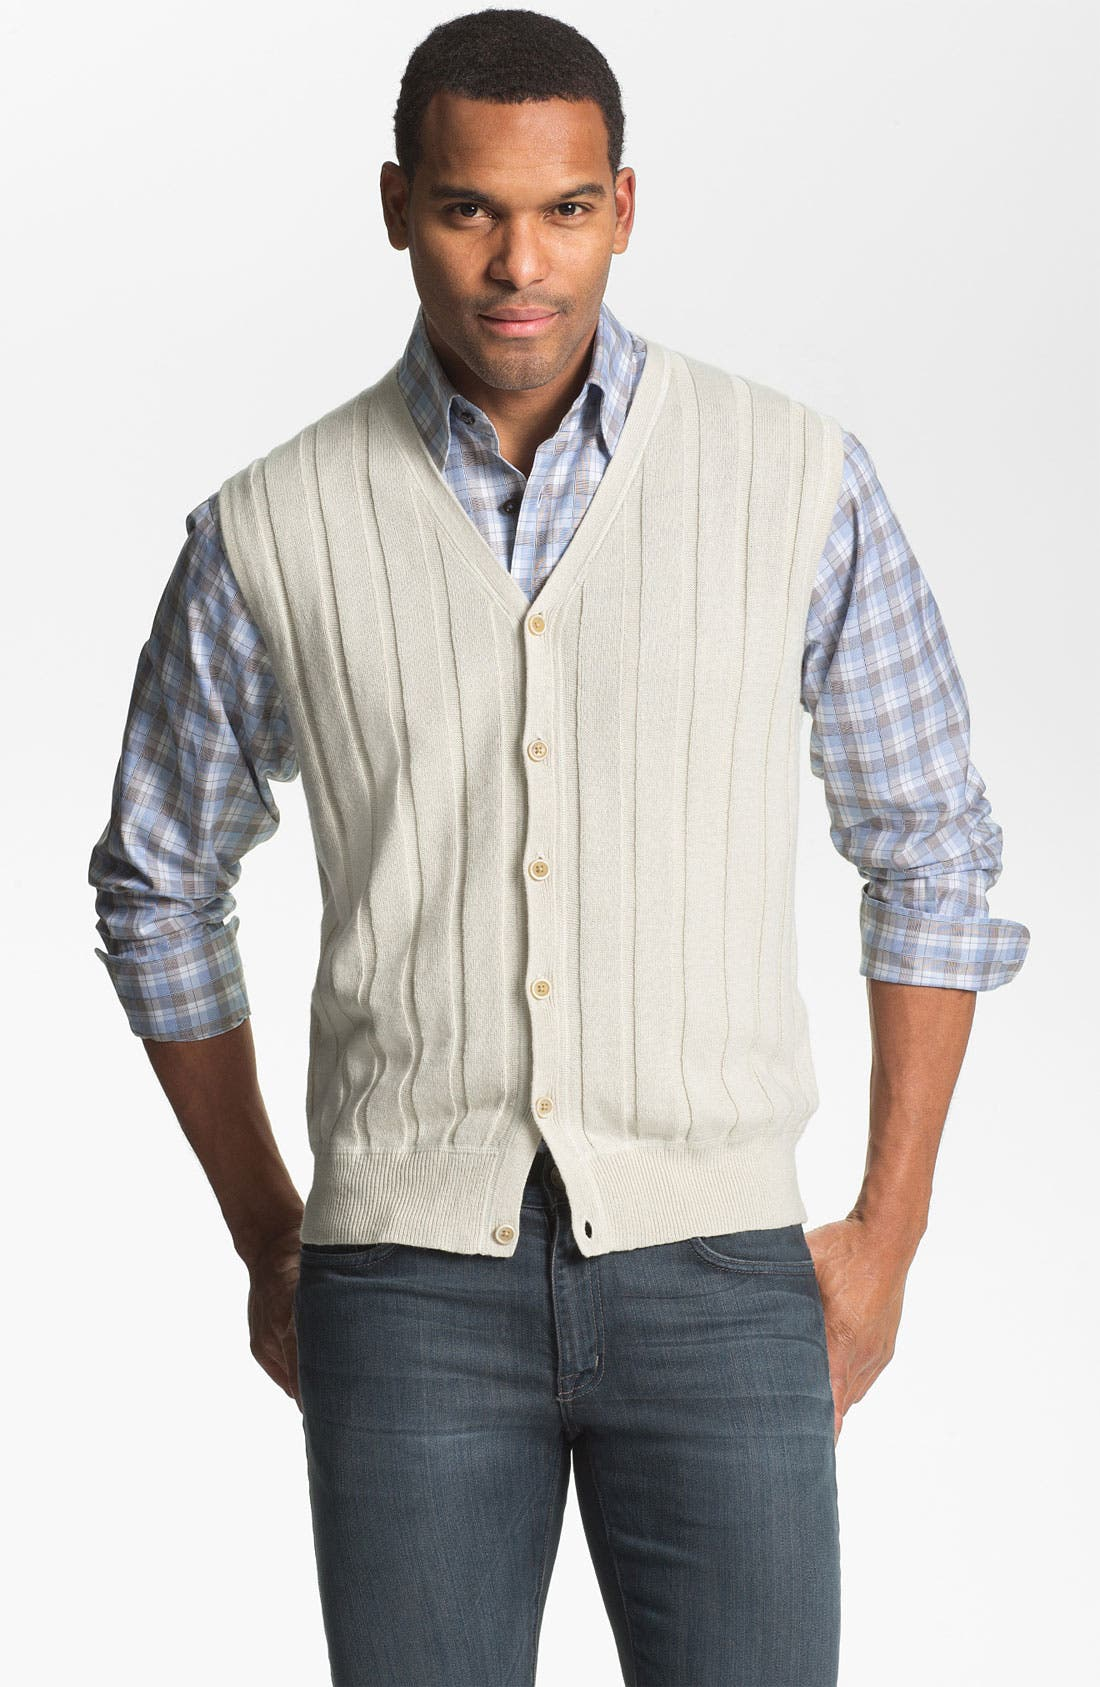 Alternate Image 1 Selected - Robert Talbott Linen & Cotton Sweater Vest